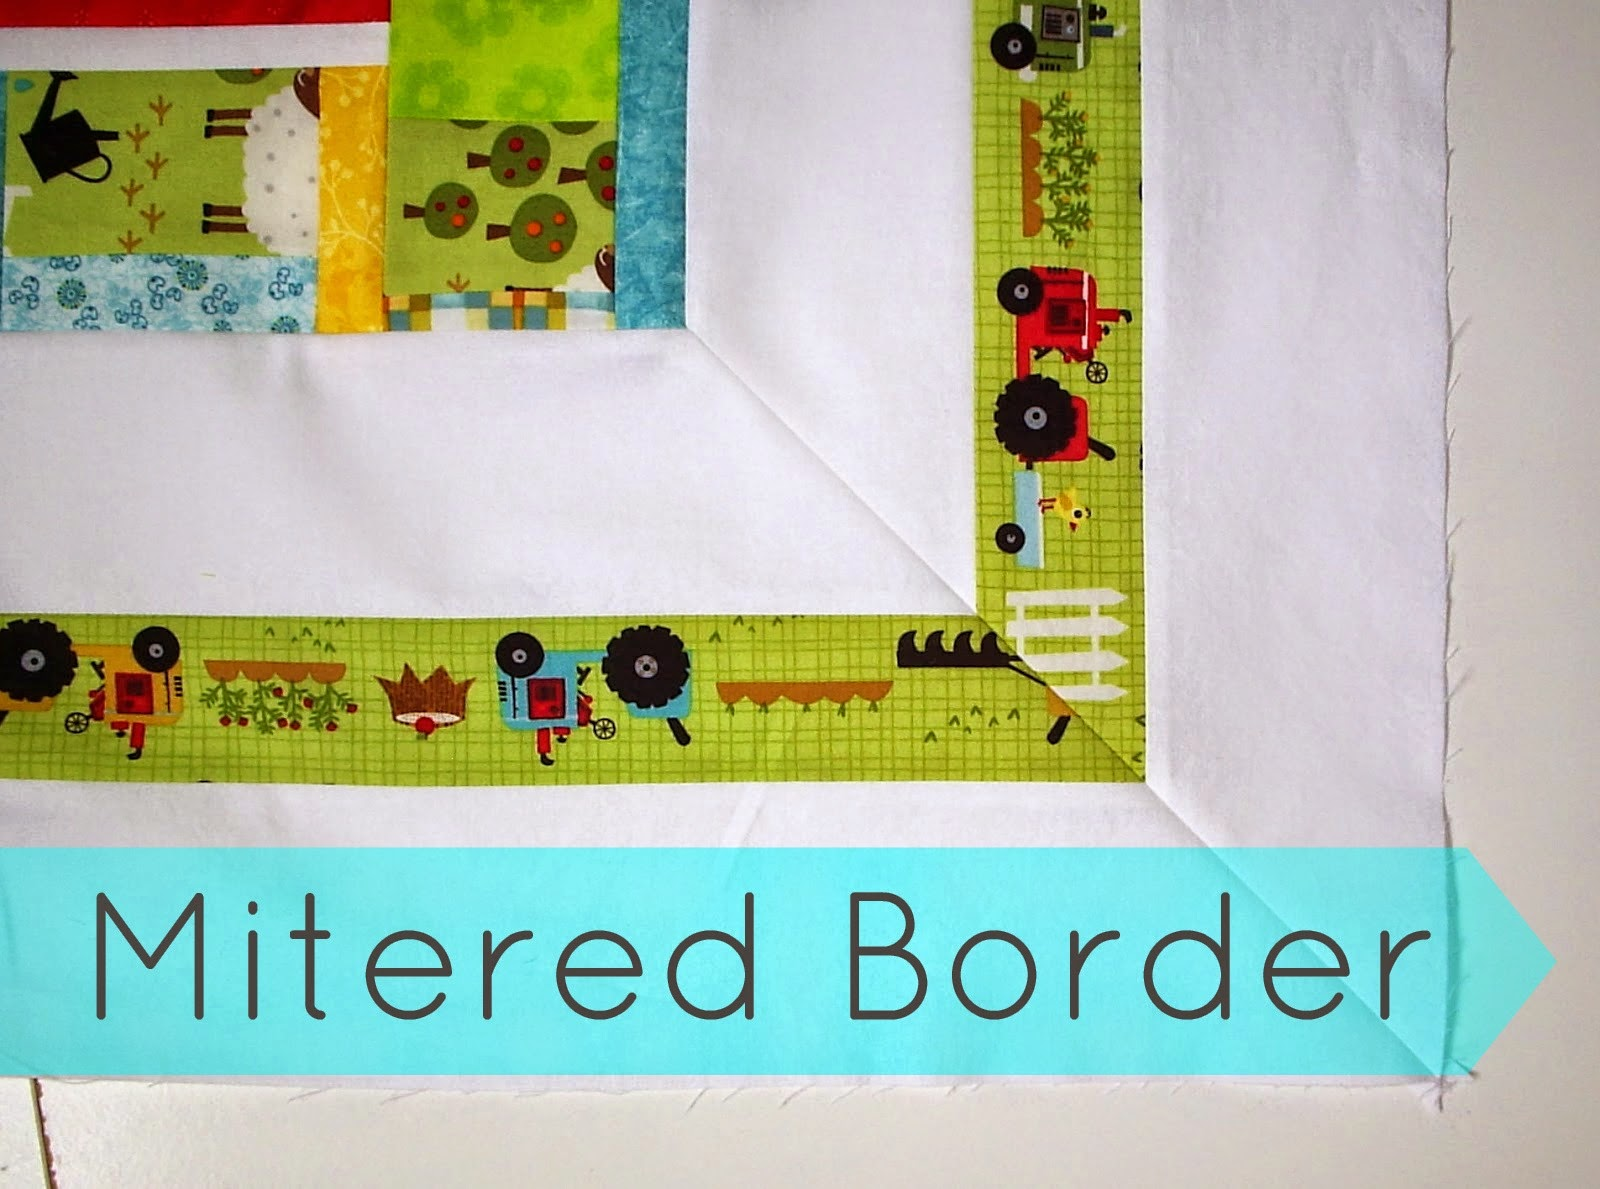 Mitered Border tutorial